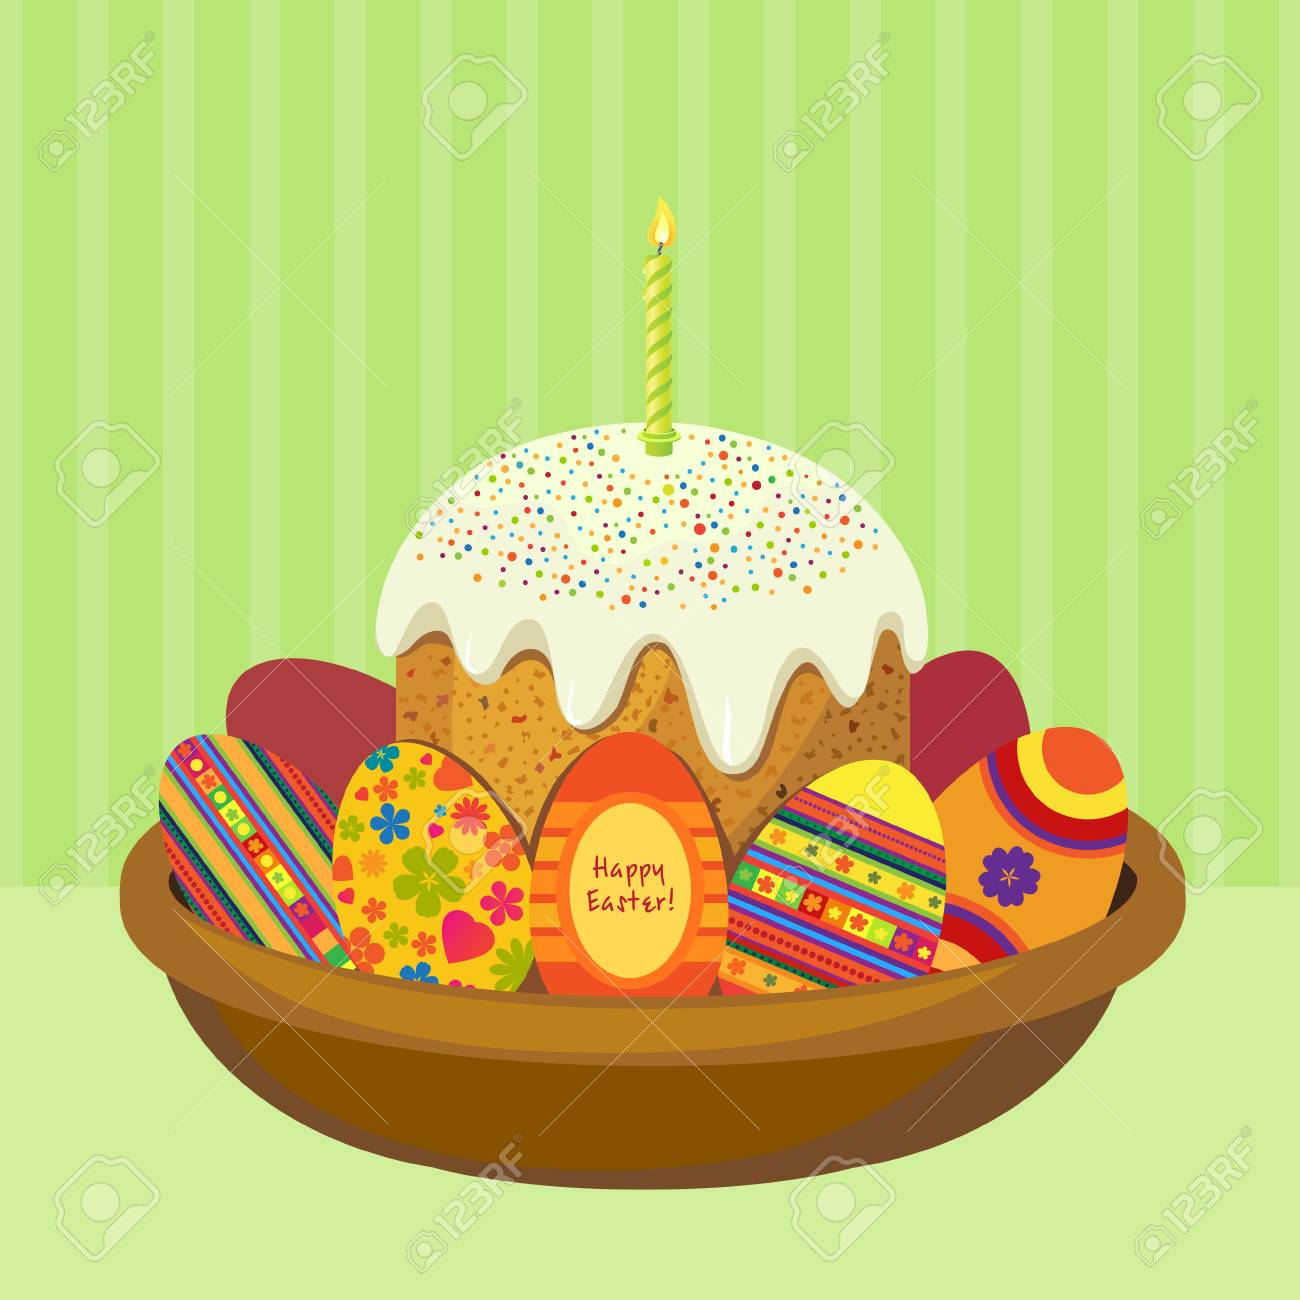 Cake For Easter Egg In A Dish With Space For Text Royalty Free